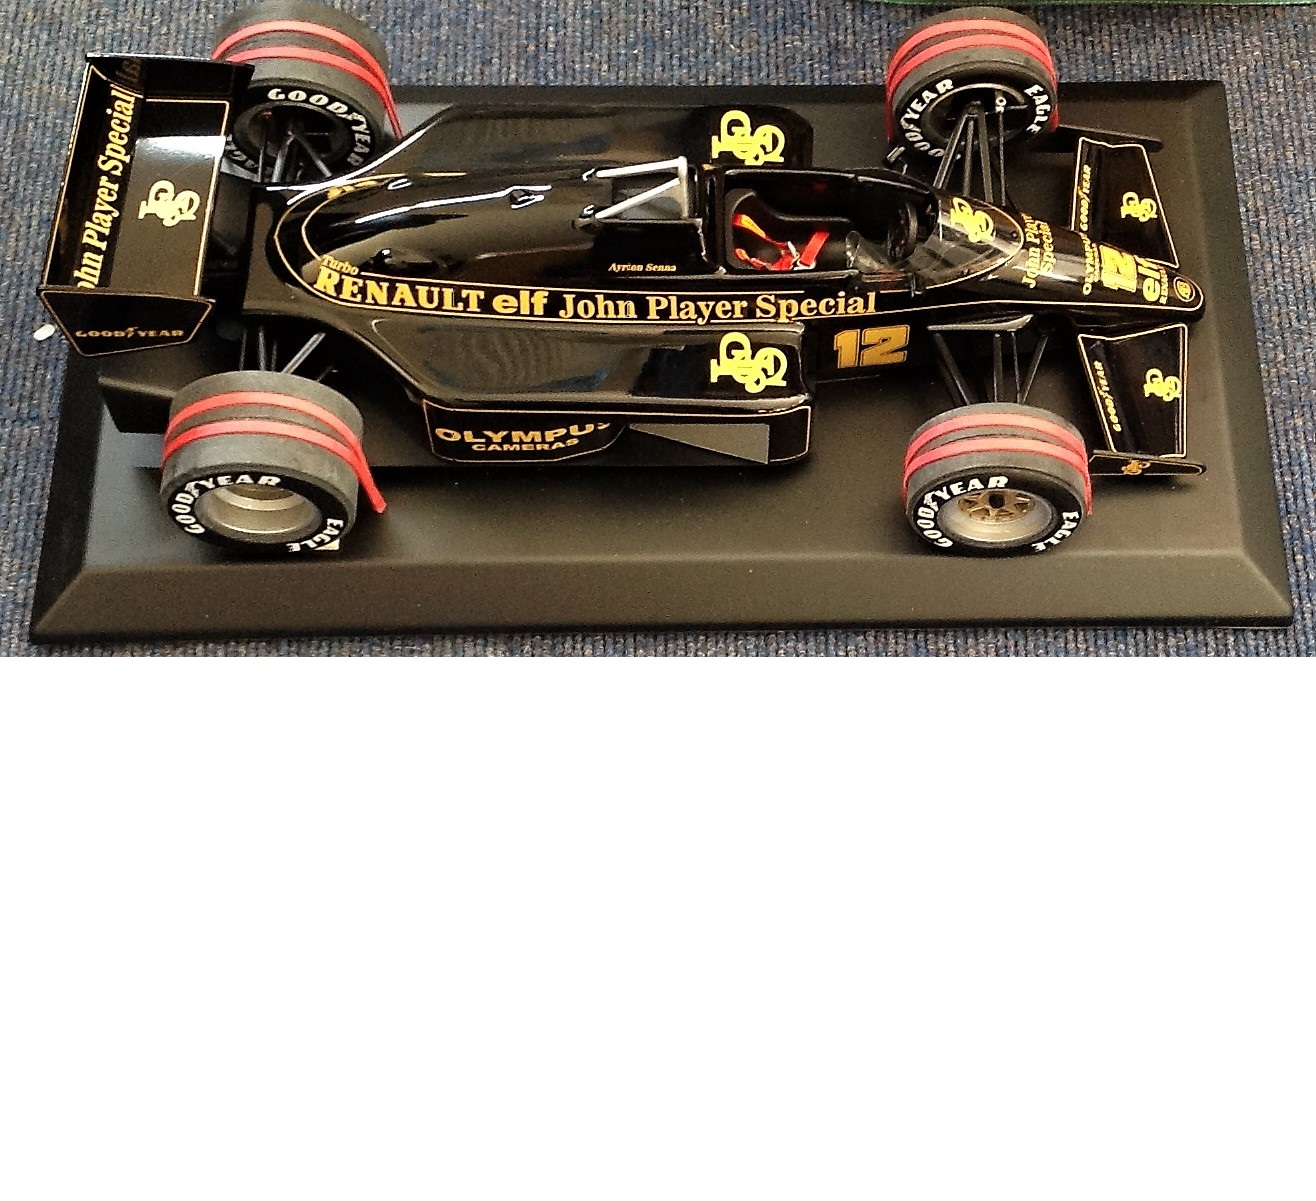 Lot 25 - Motor Racing Ayrton Sennas 1985 Lotus John Player Special 97T Formula One scale model. The Lotus 97T